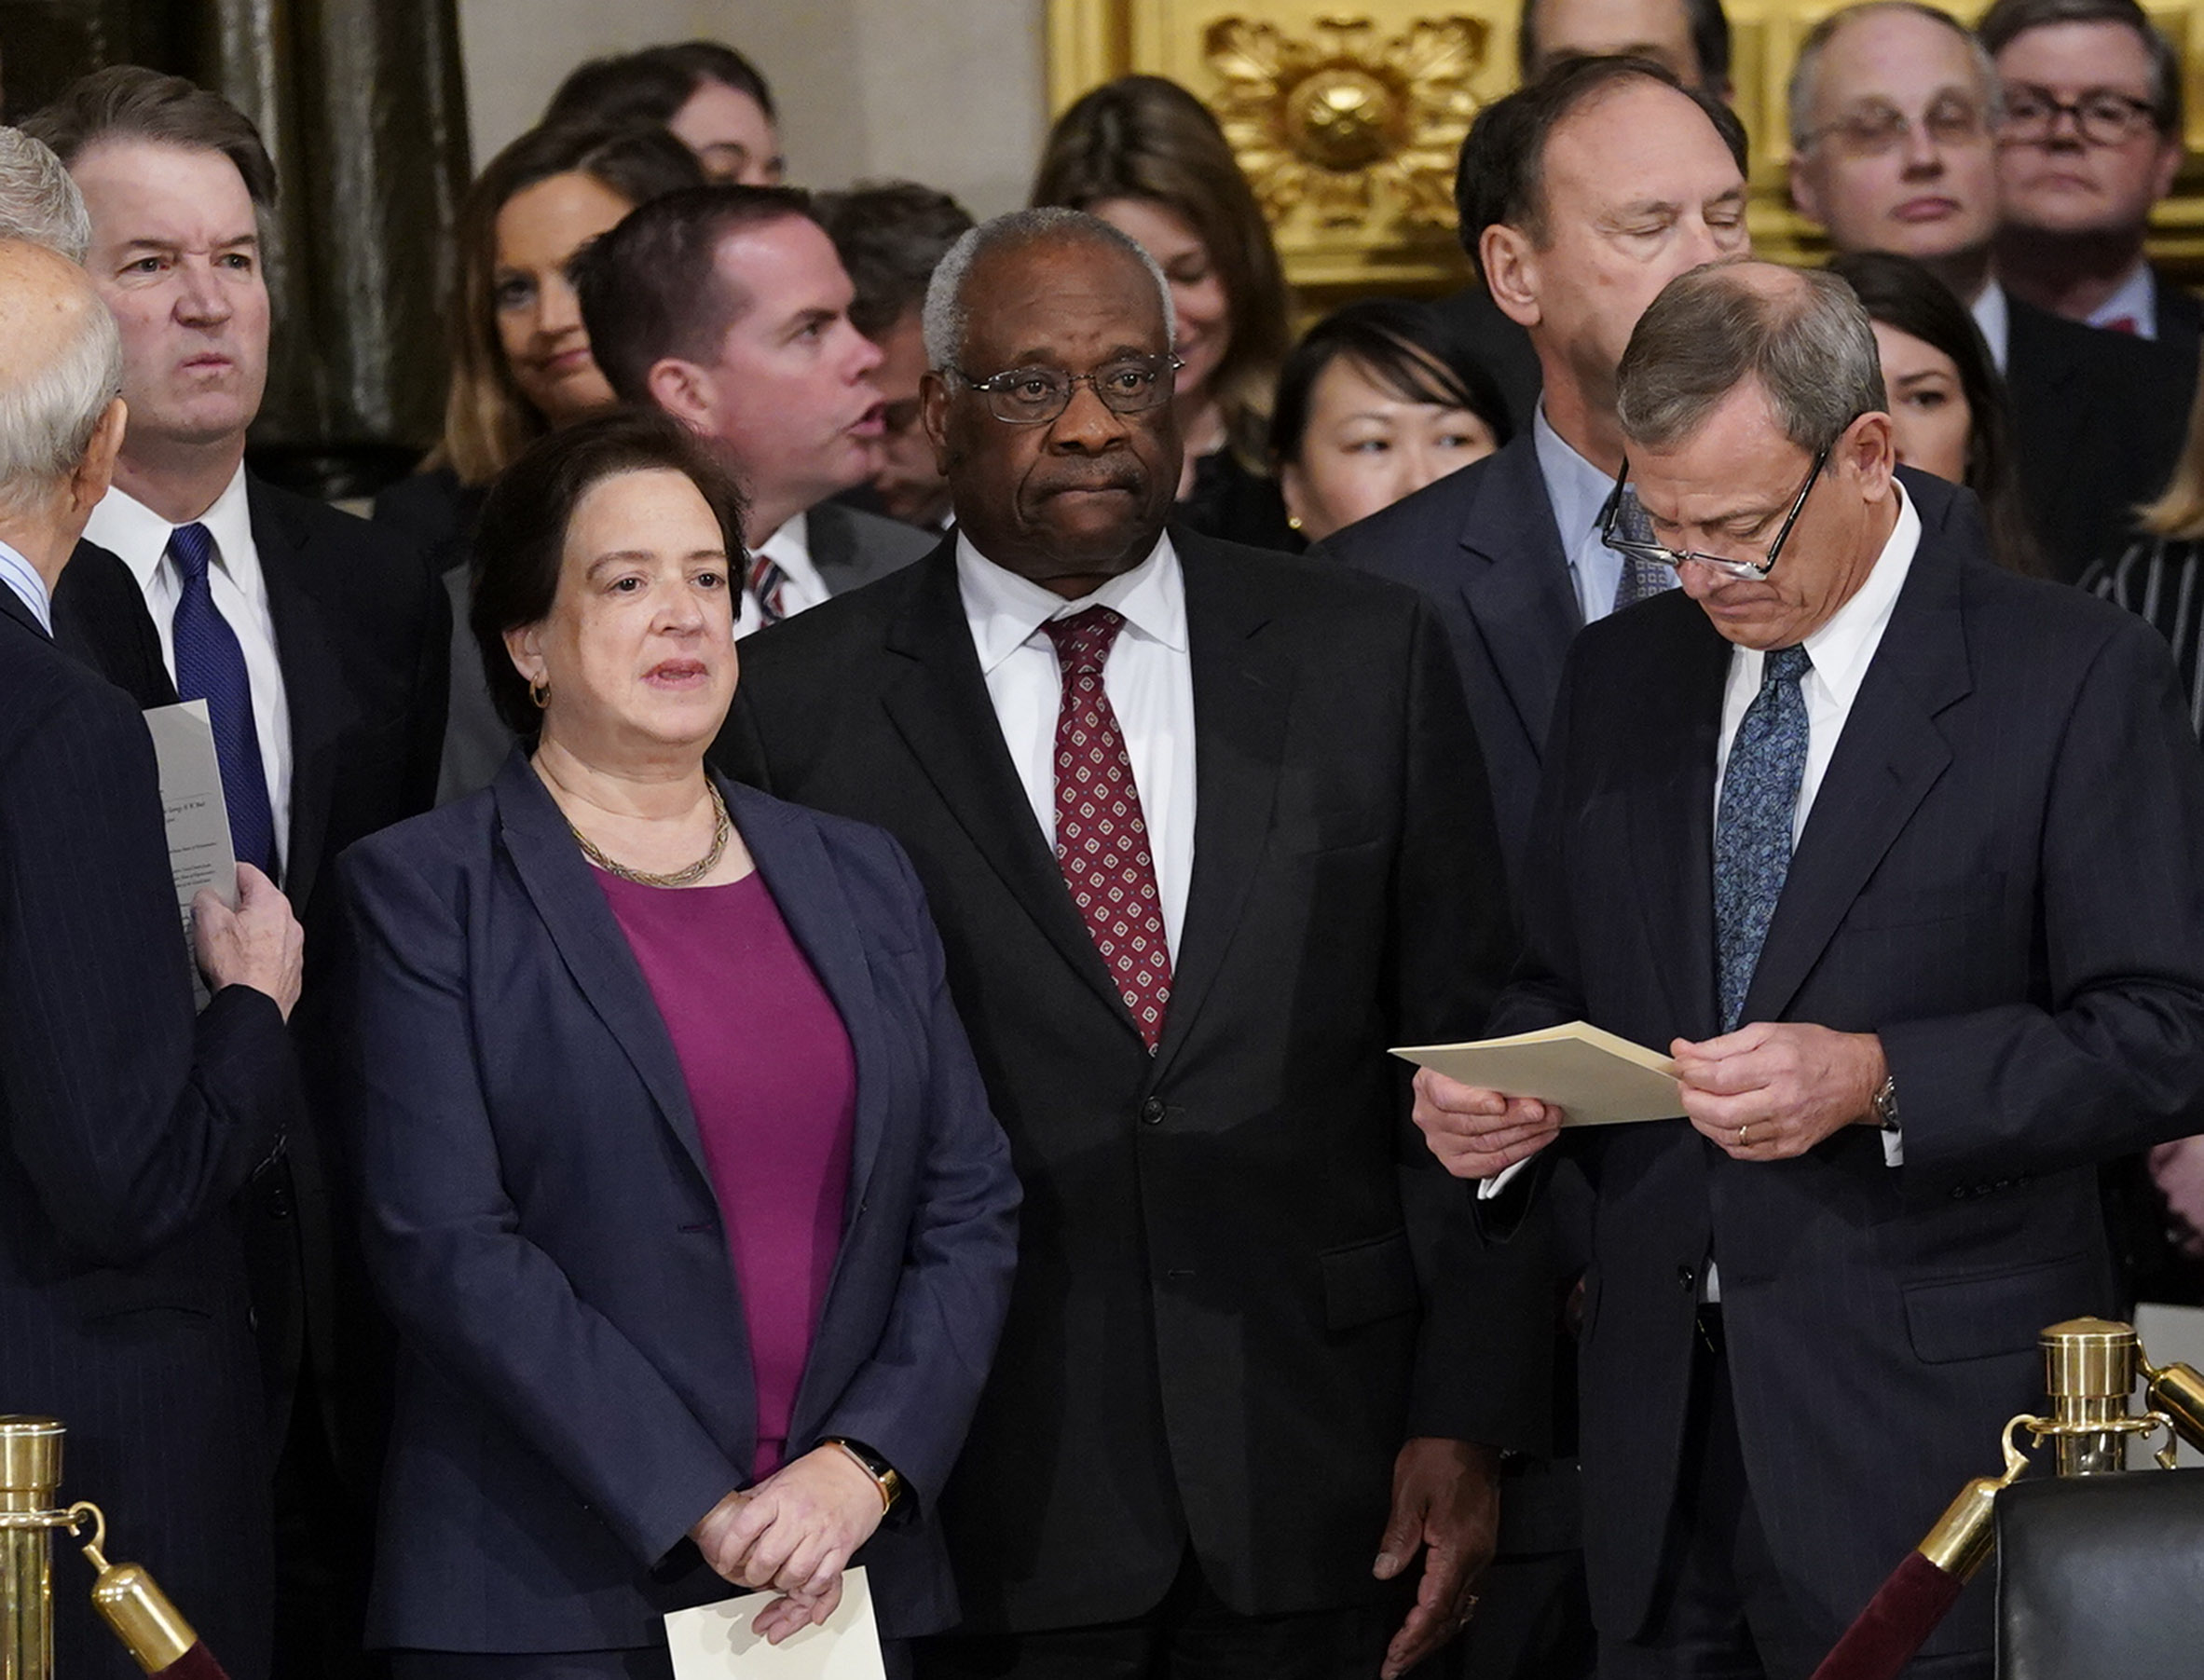 Associate Justices Brett Kavanaugh, Elena Kagan, Clarence Thomas, and Chief Justice John Roberts arrive for services for former President George H.W. Bush at the US Capitol Rotunda on Dec. 03, 2018 in Washington, DC.